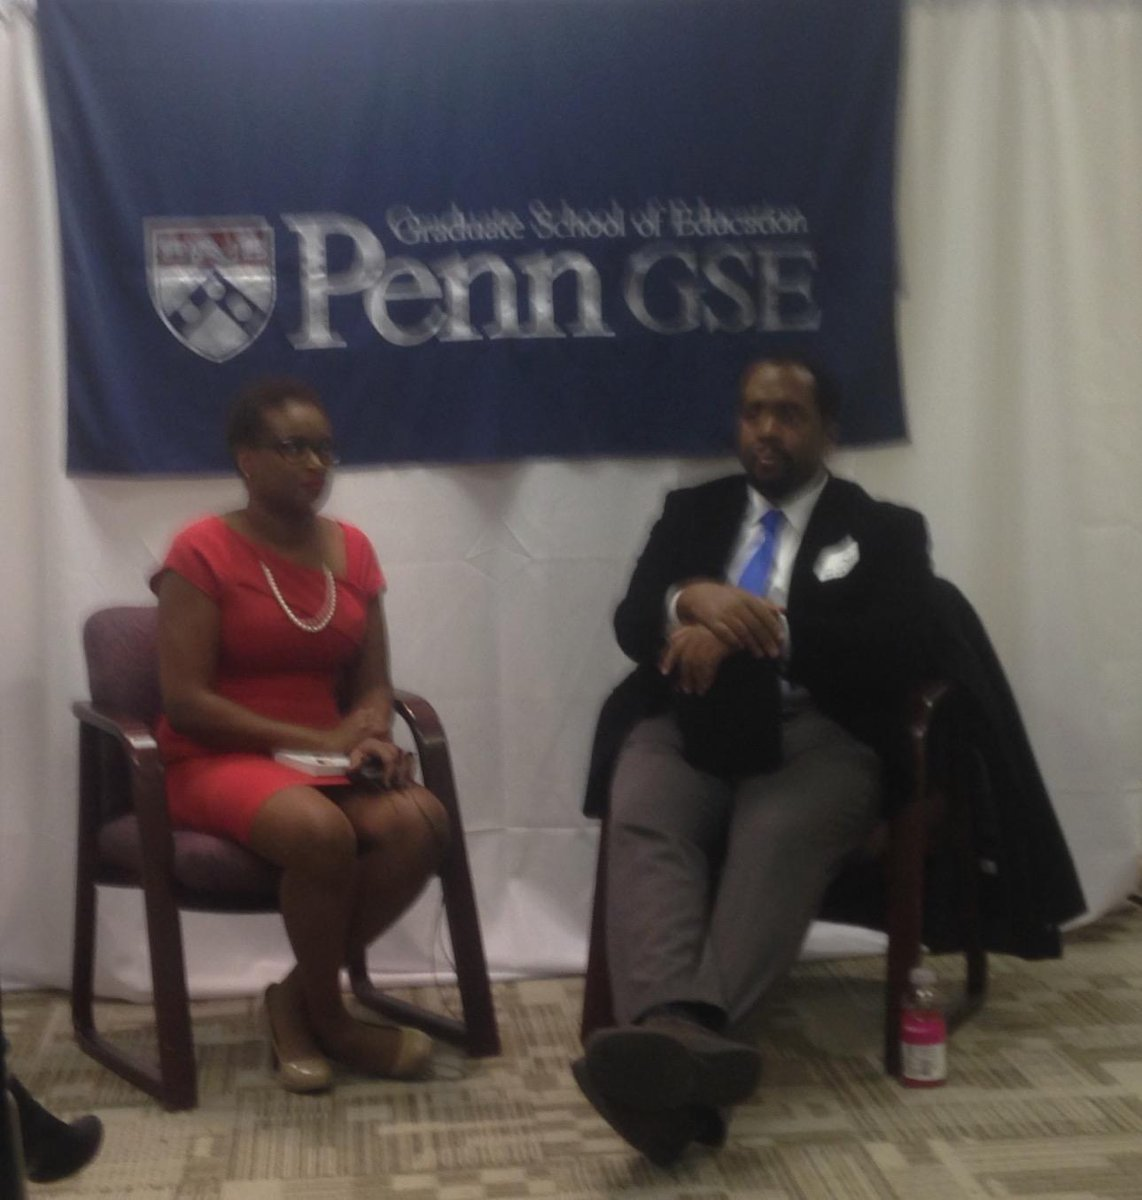 Penn GSE educators on the square #pennedchat @MCDPEL w/Jose Vilson http://t.co/hg1bhWivqe